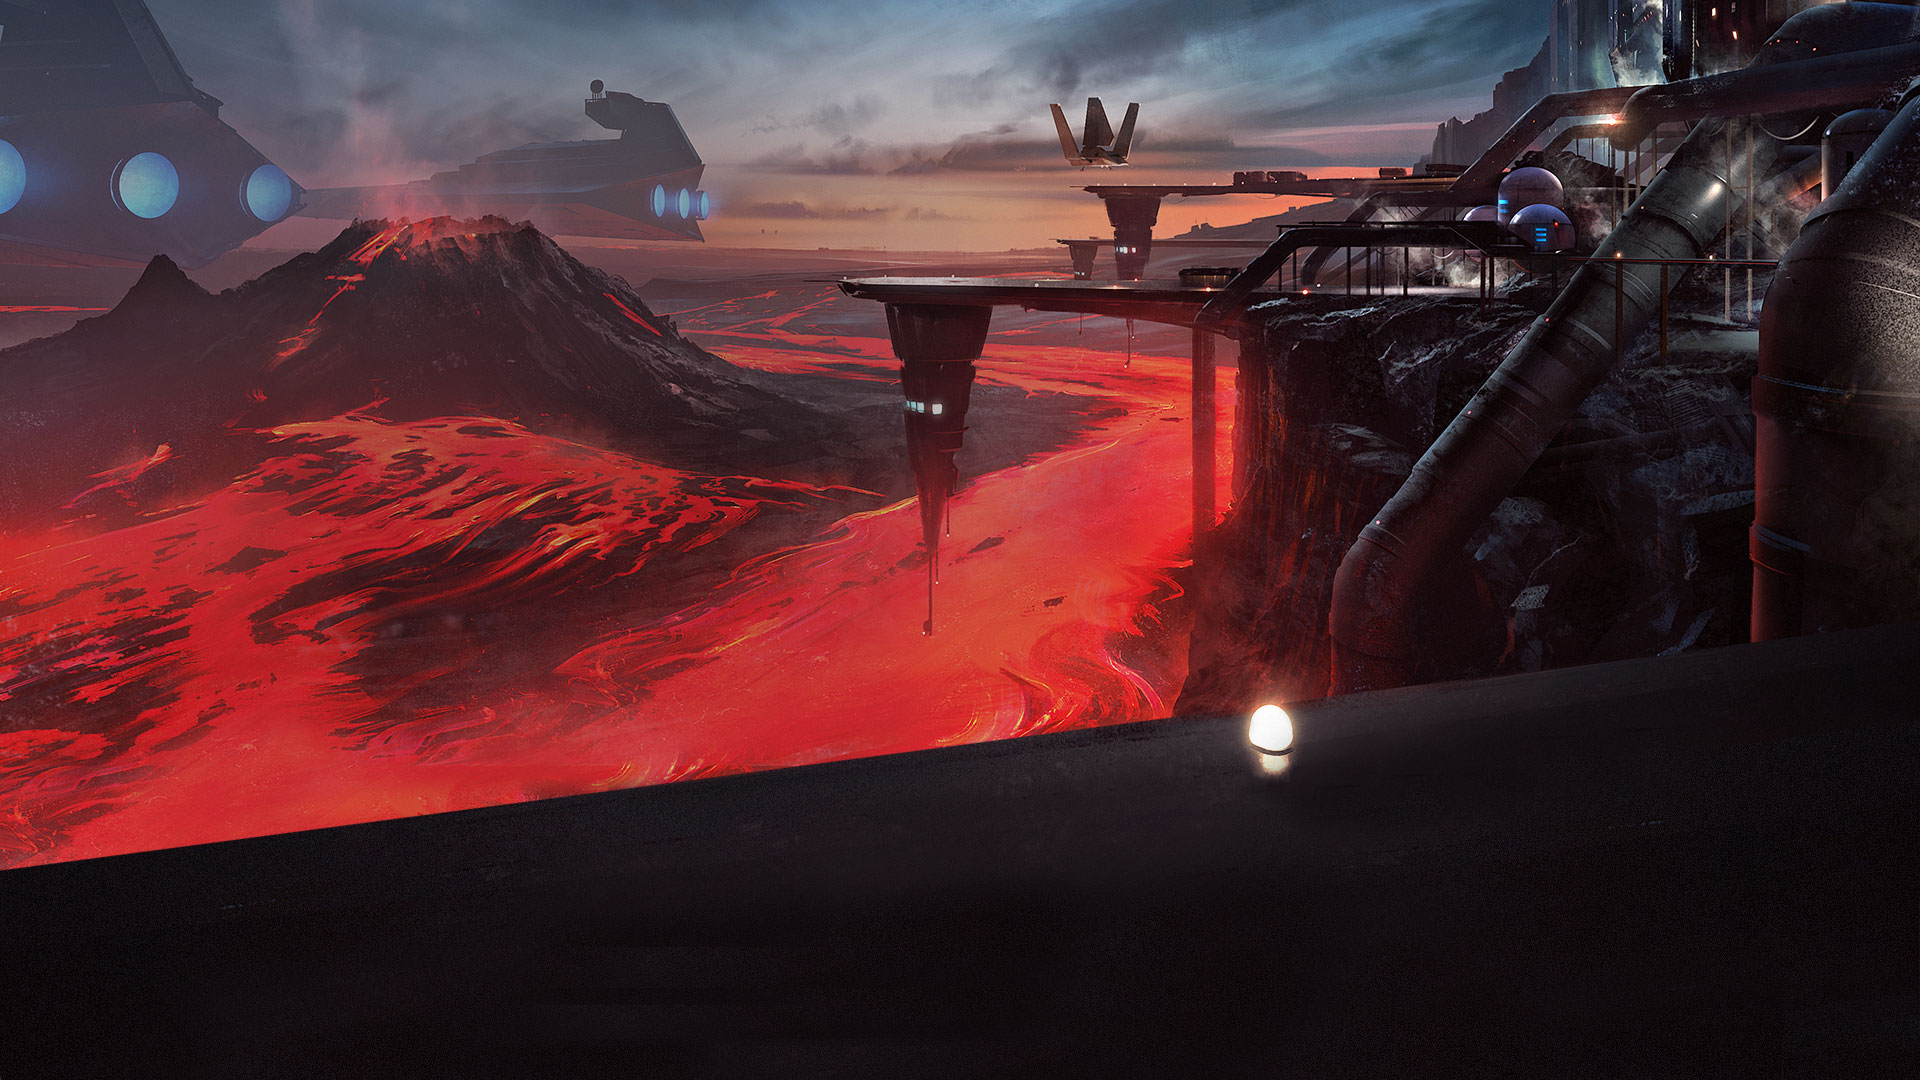 Star Wars Battlefront Outer Rim DLC HD Wallpaper Background 1920x1080